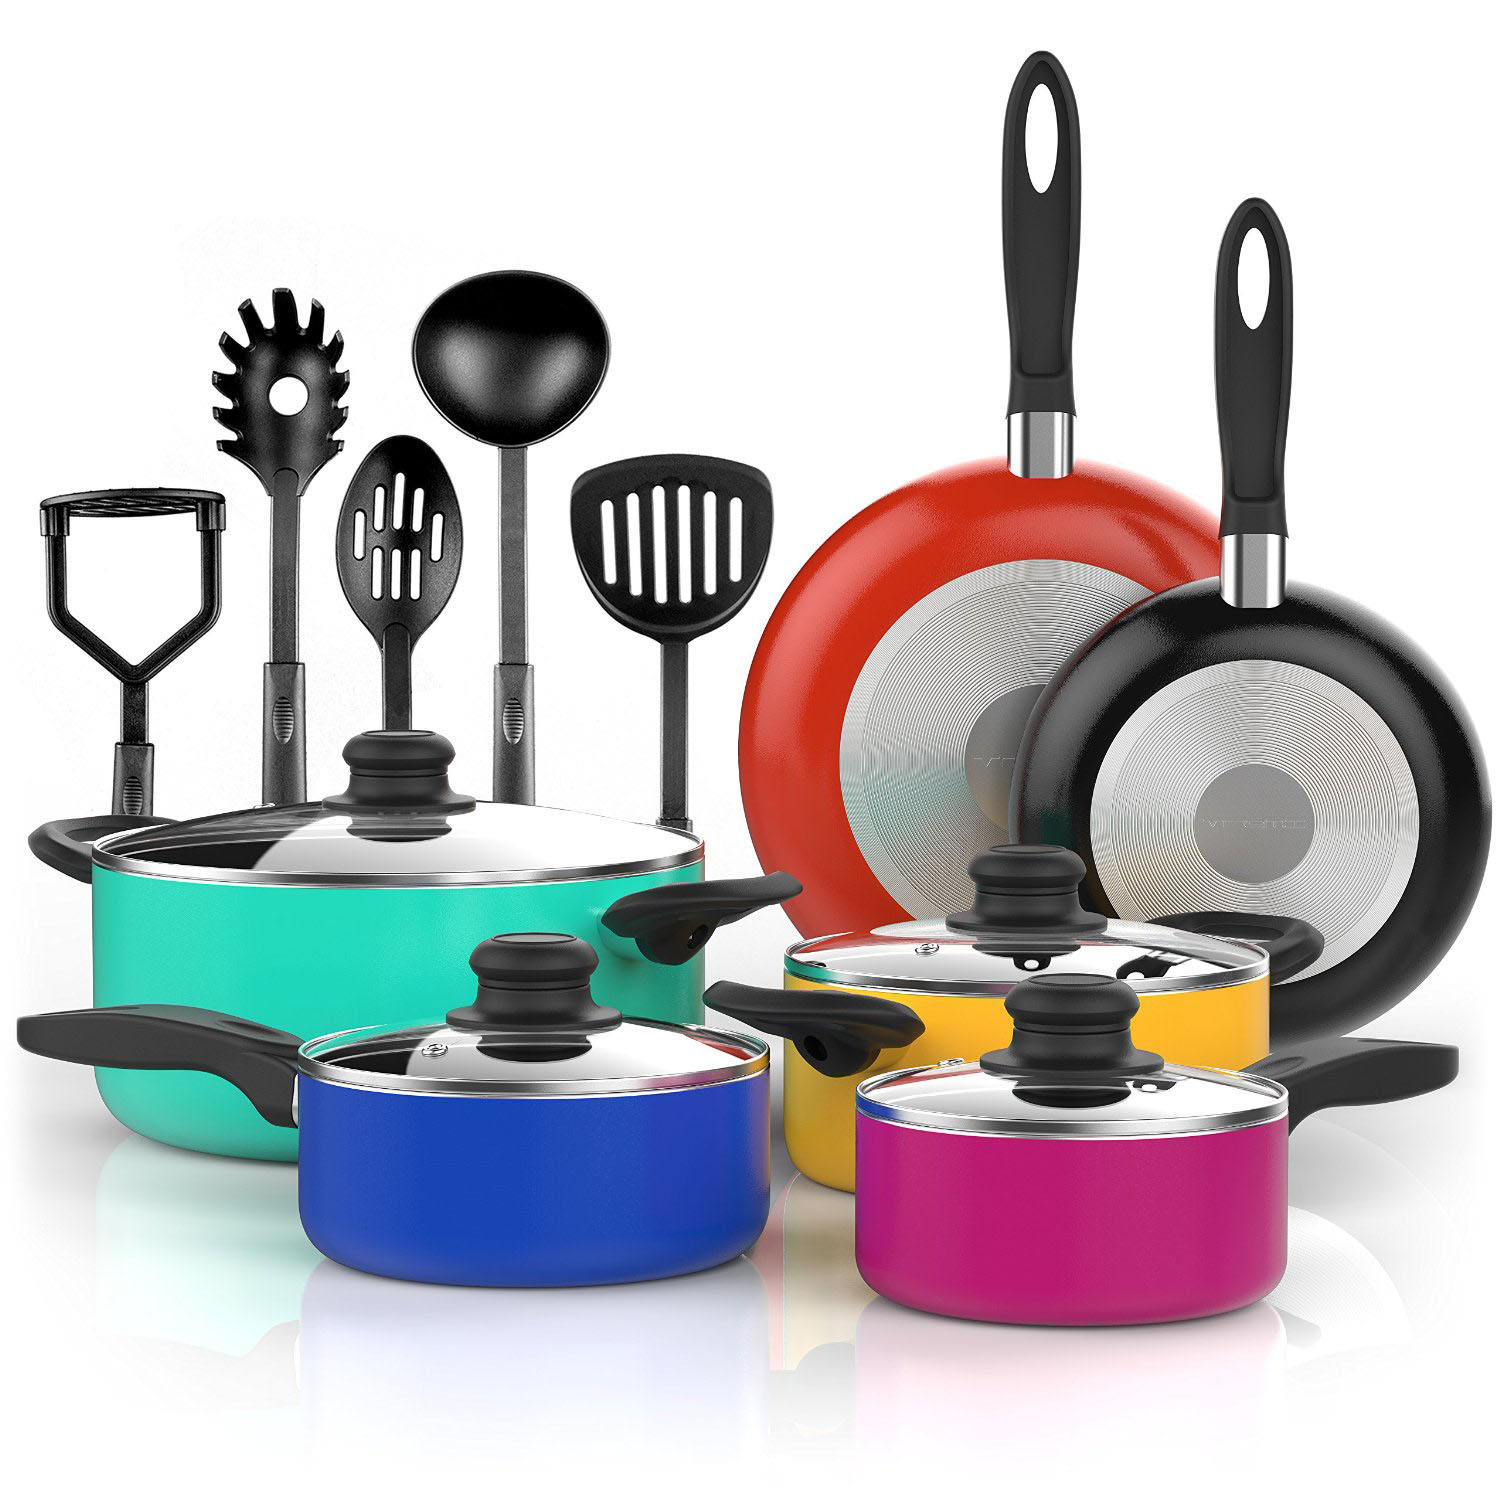 Deal of the Day 48% f Vremi 15 Piece Nonstick Cookware Set